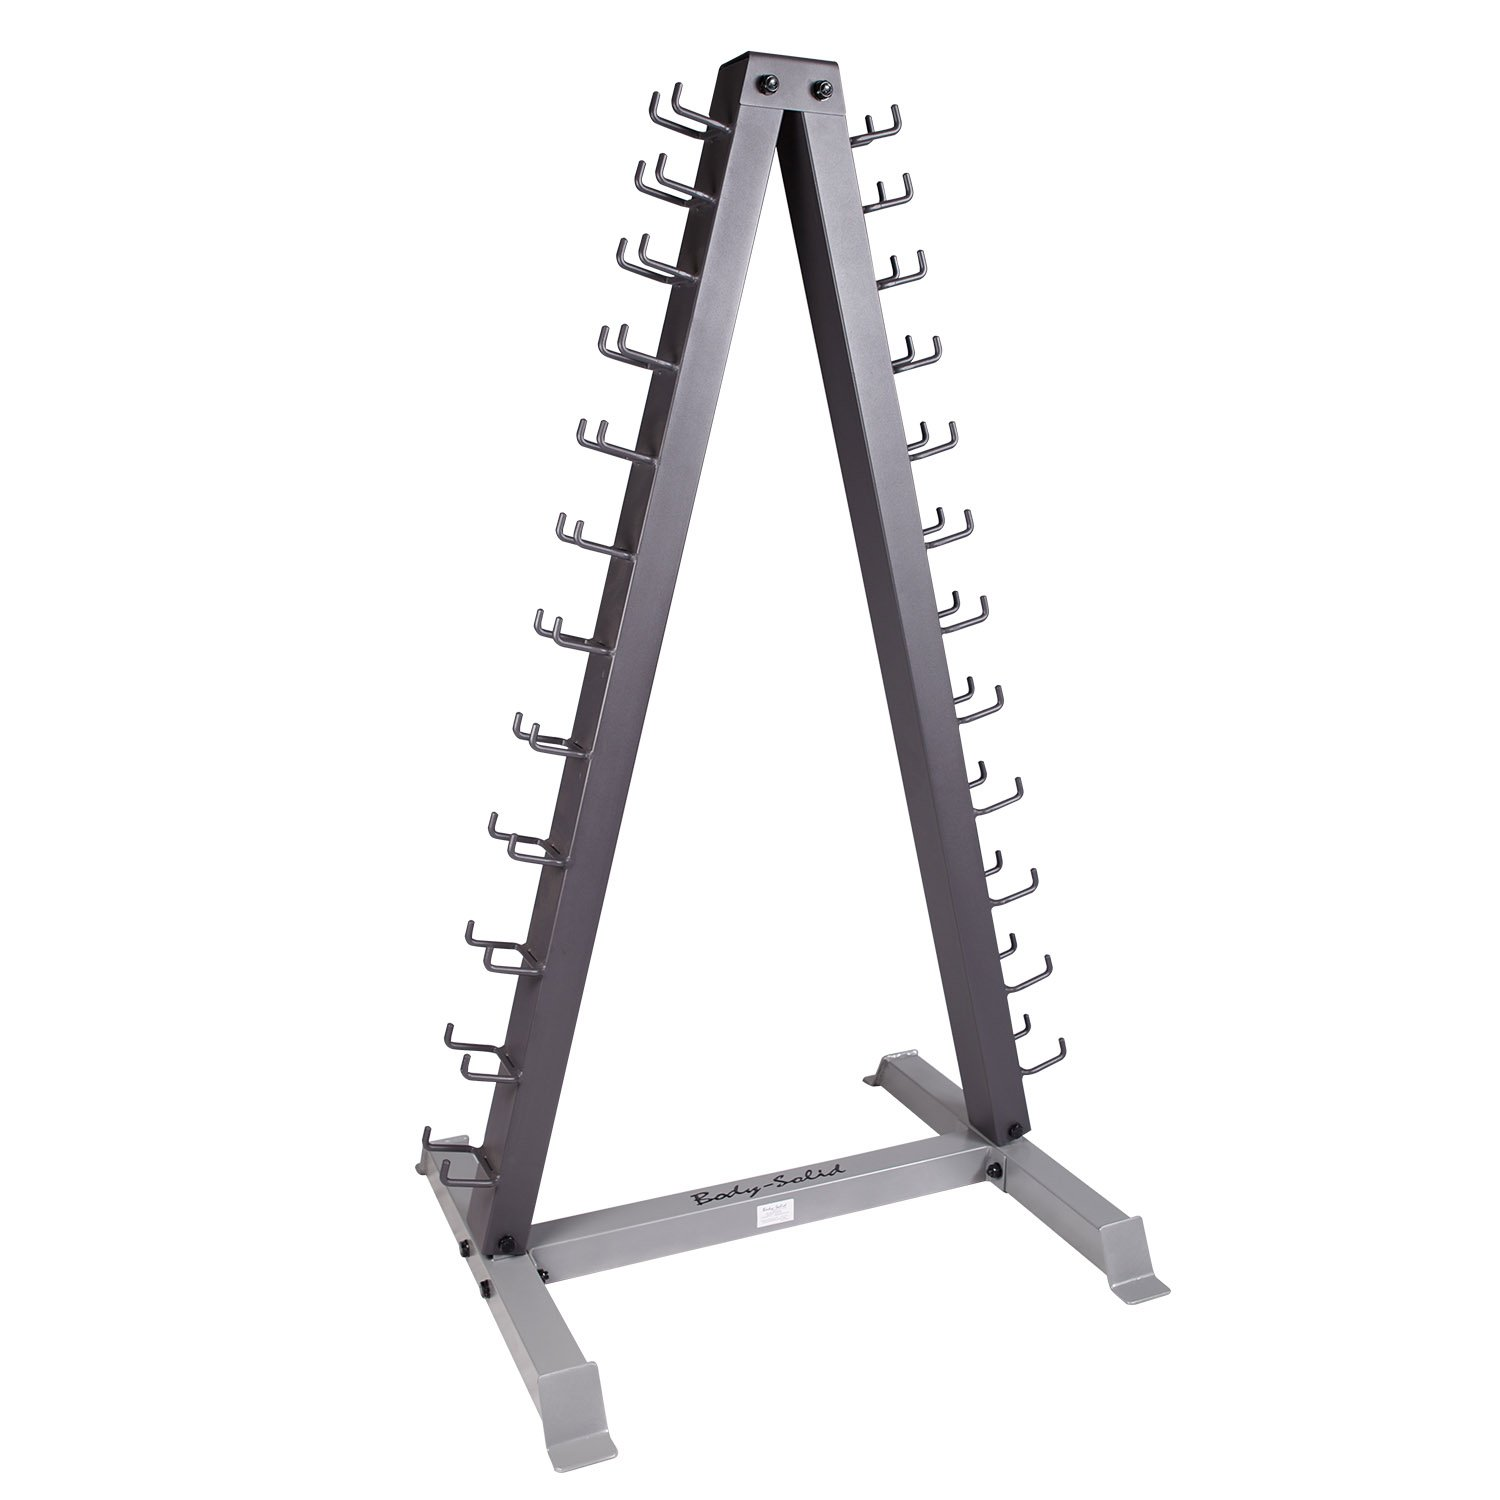 Body Solid Dumbbell Rack Tools 12 Pair Vertical, gdr24: Amazon.es ...